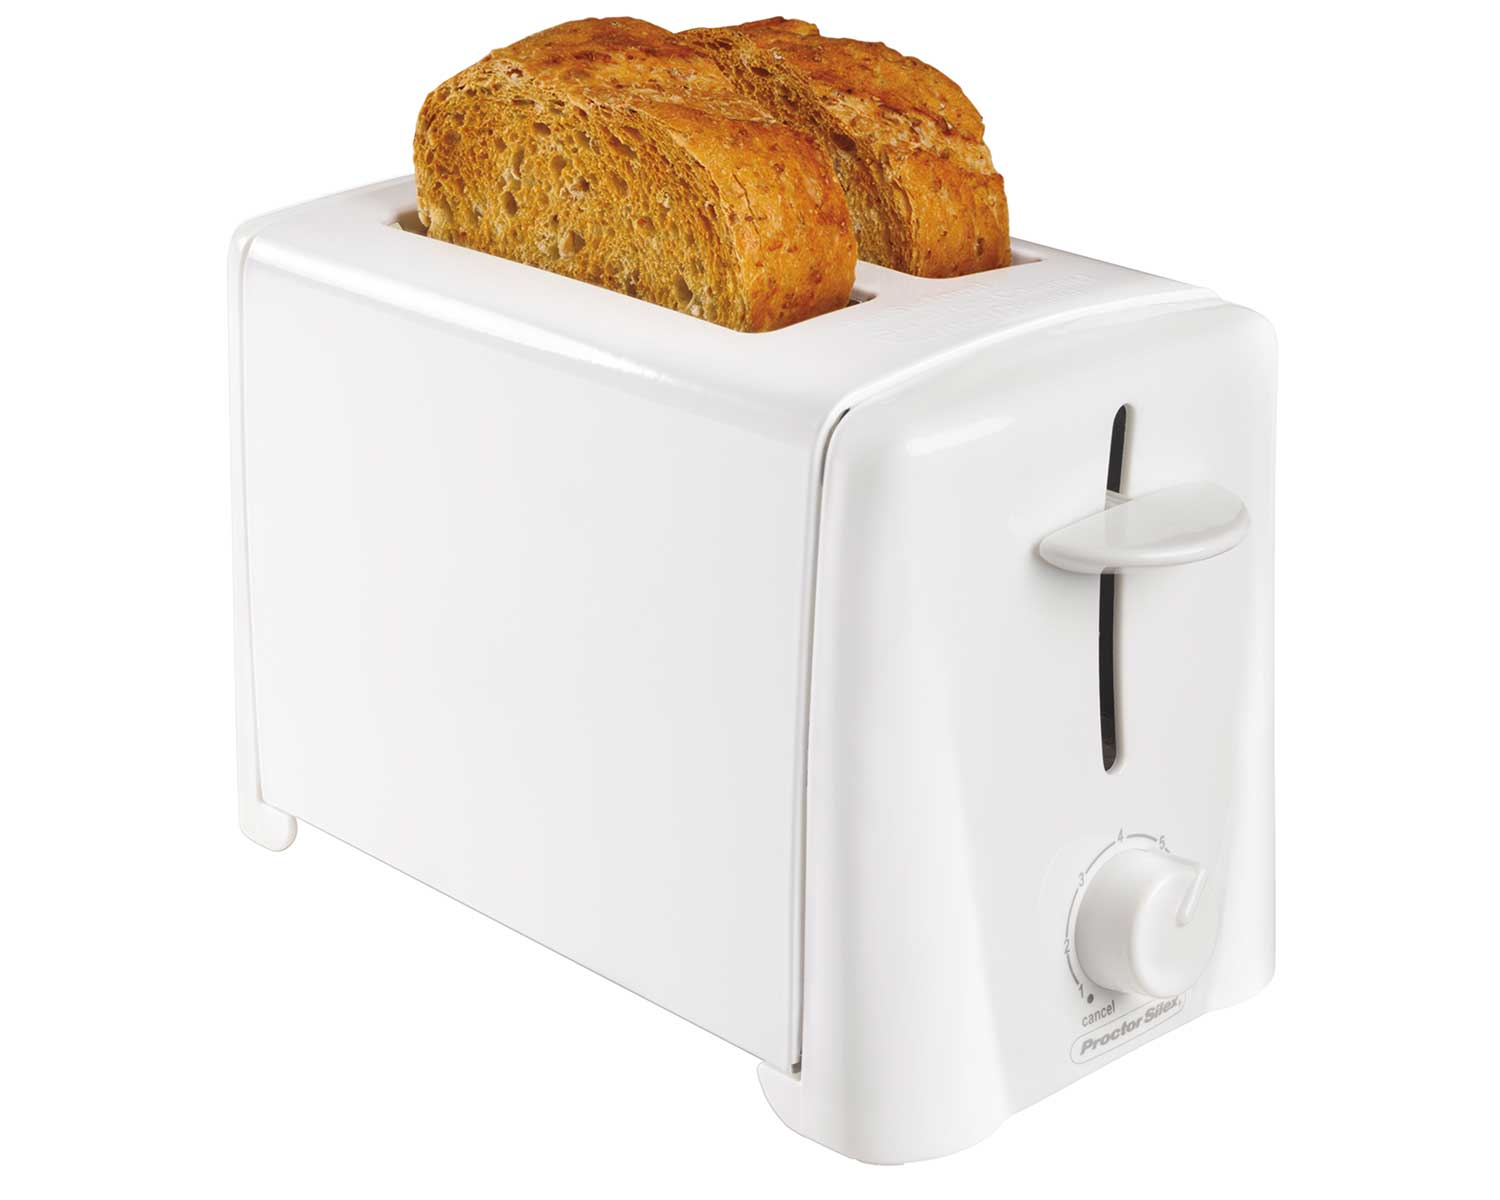 2-Slice White Toaster-22611 Small Size